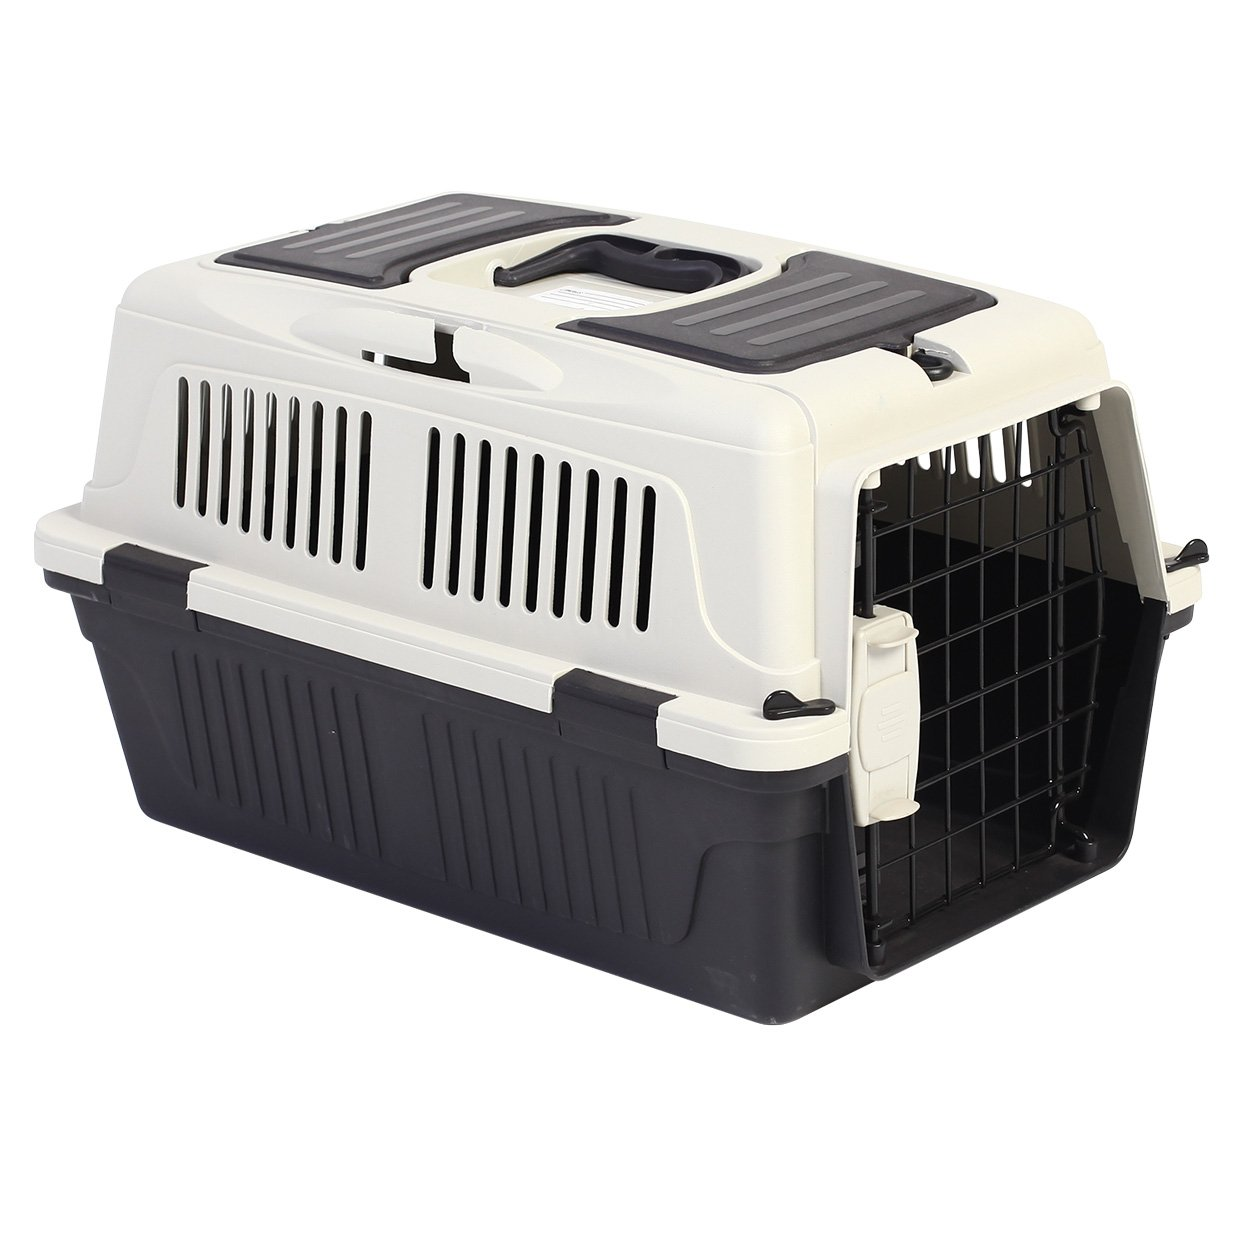 Animal Treasures PS7906 Deluxe Dog Kennel, X-Small/19'', Gray/White